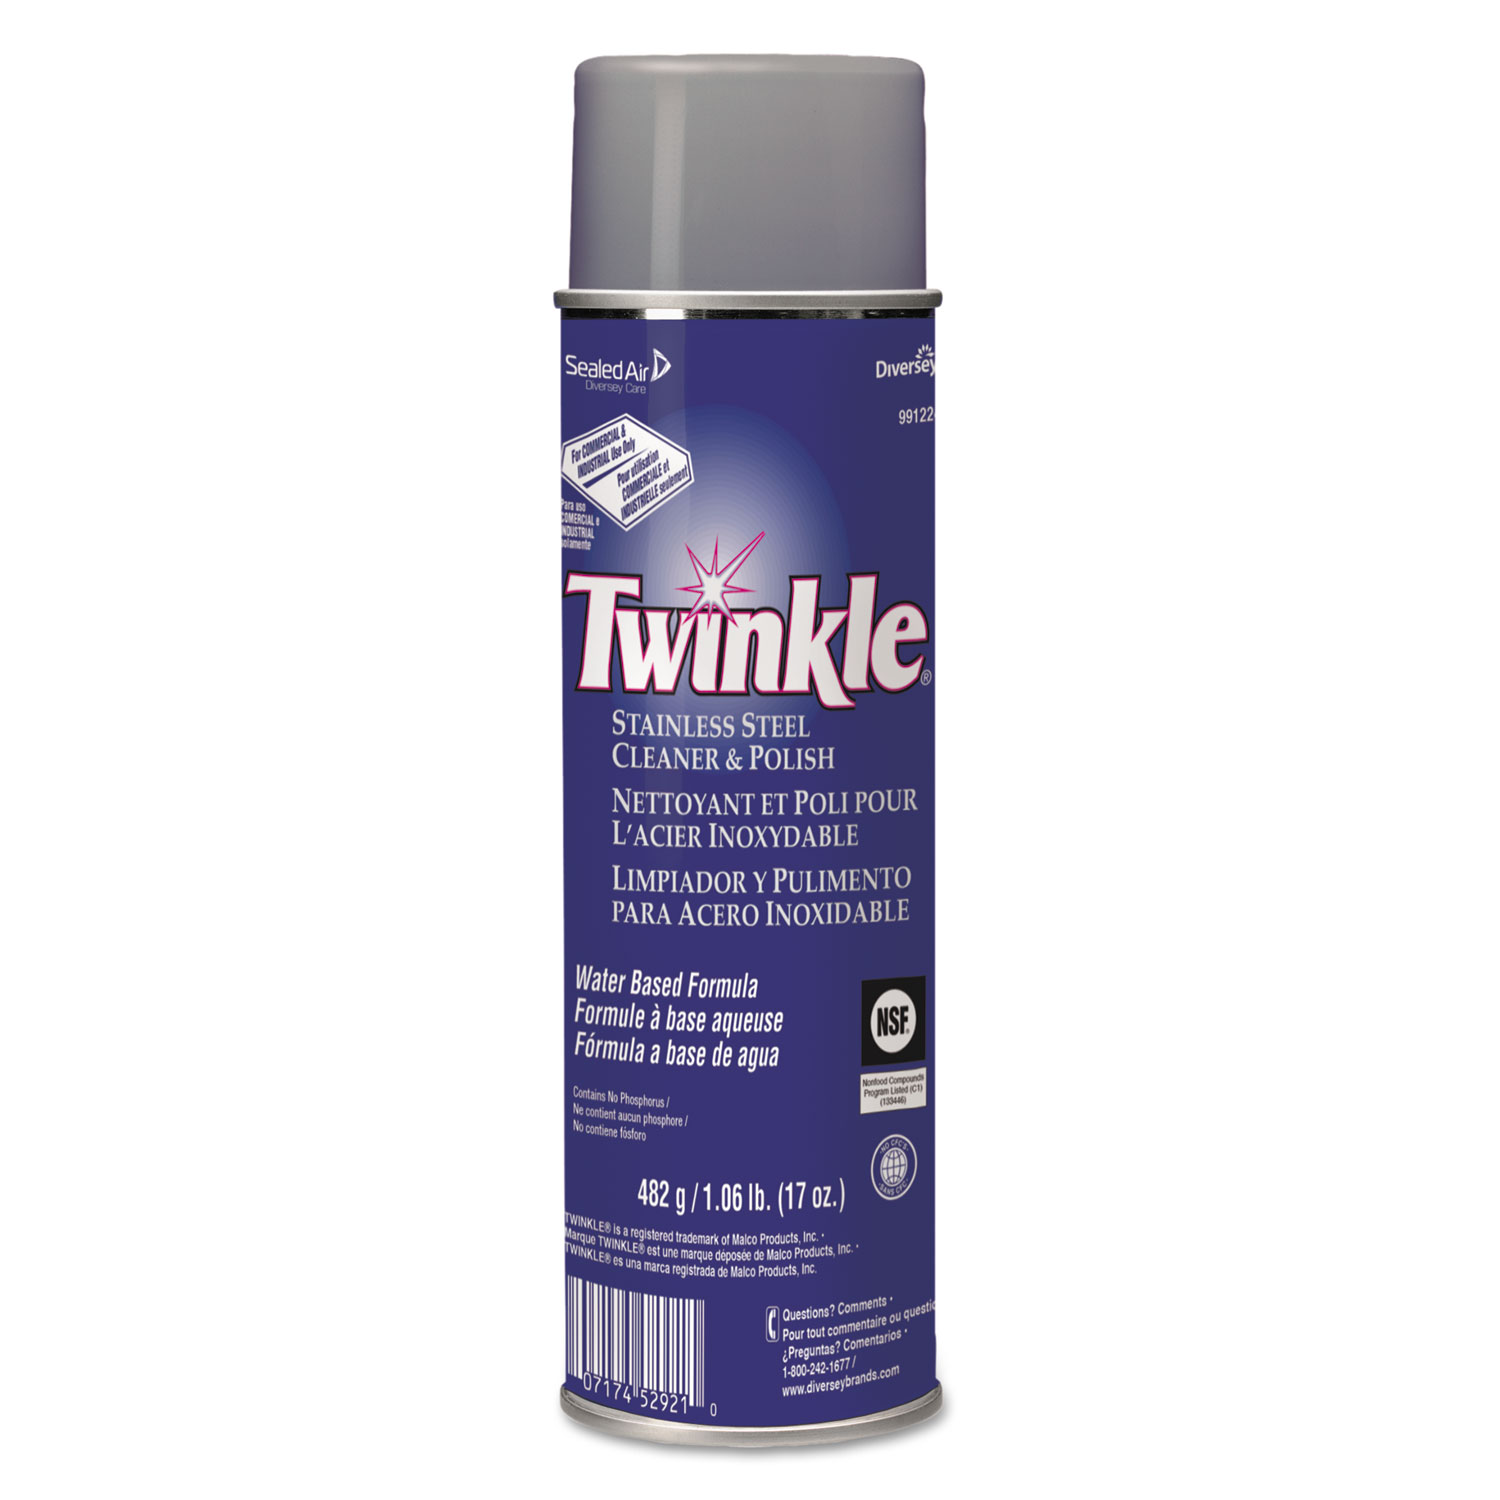 Stainless Steel Cleaner Amp Polish By Twinkle 174 Dvo991224ea